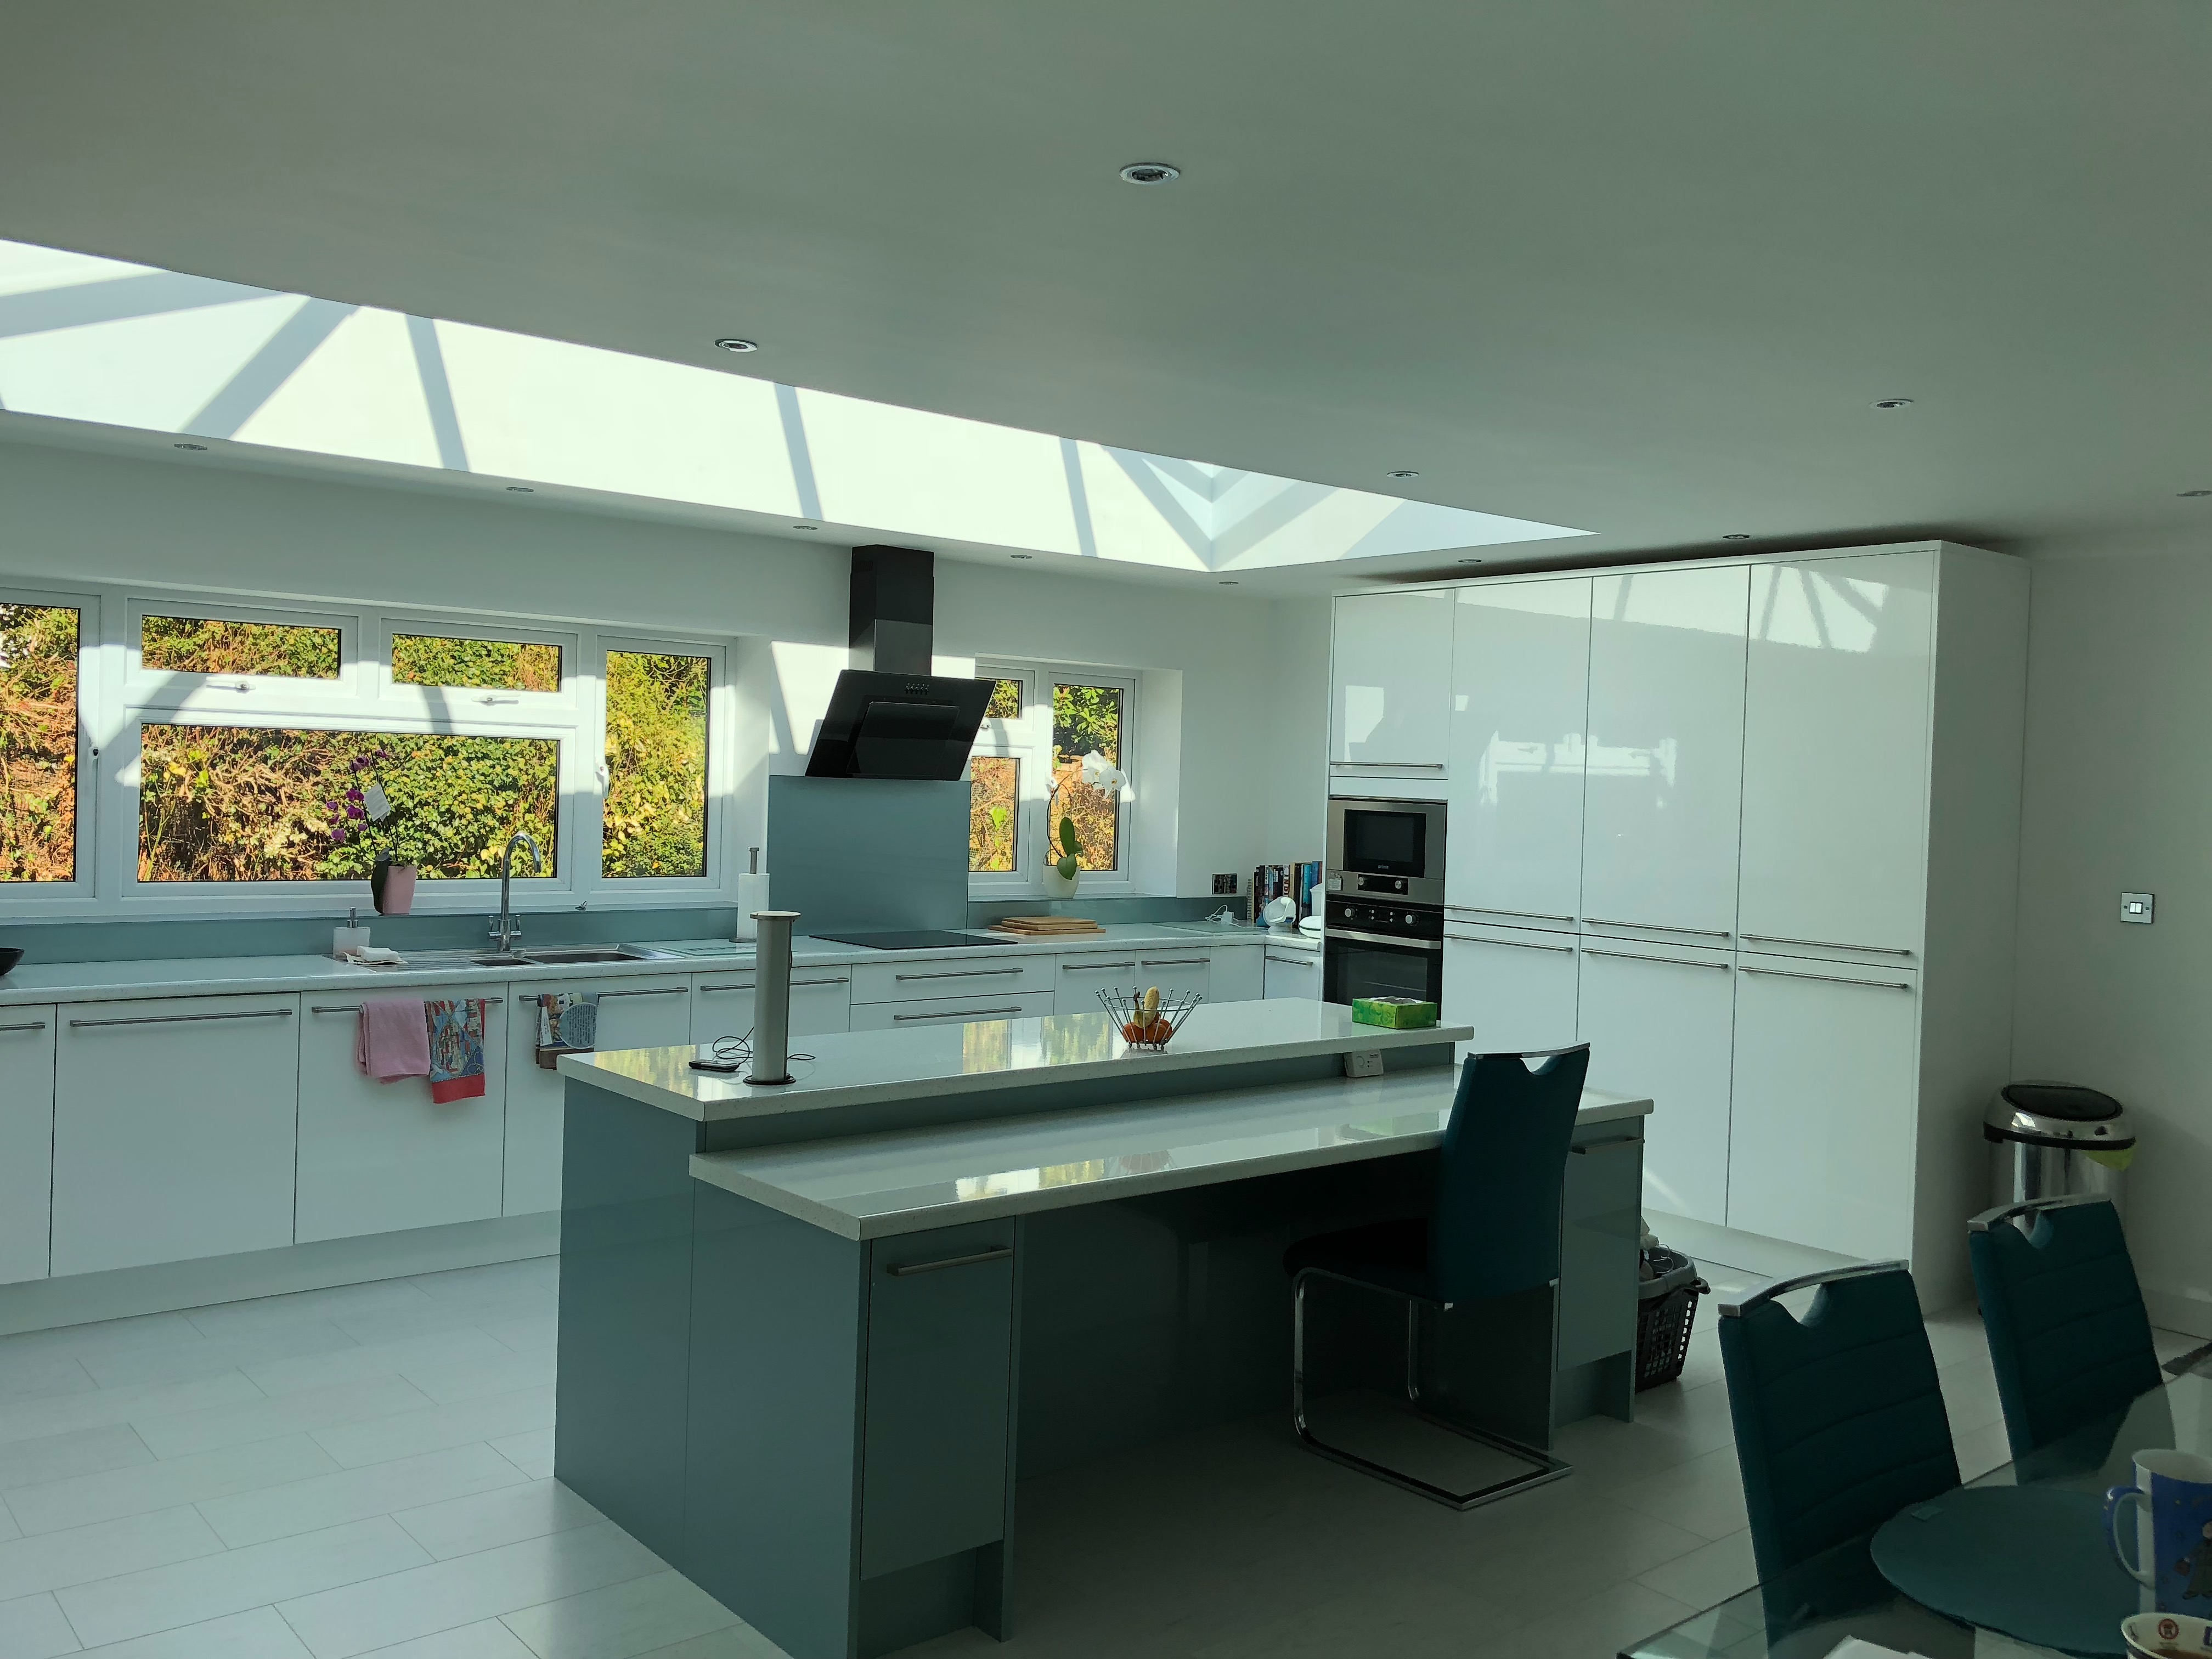 7. Stone Kitchen Extension